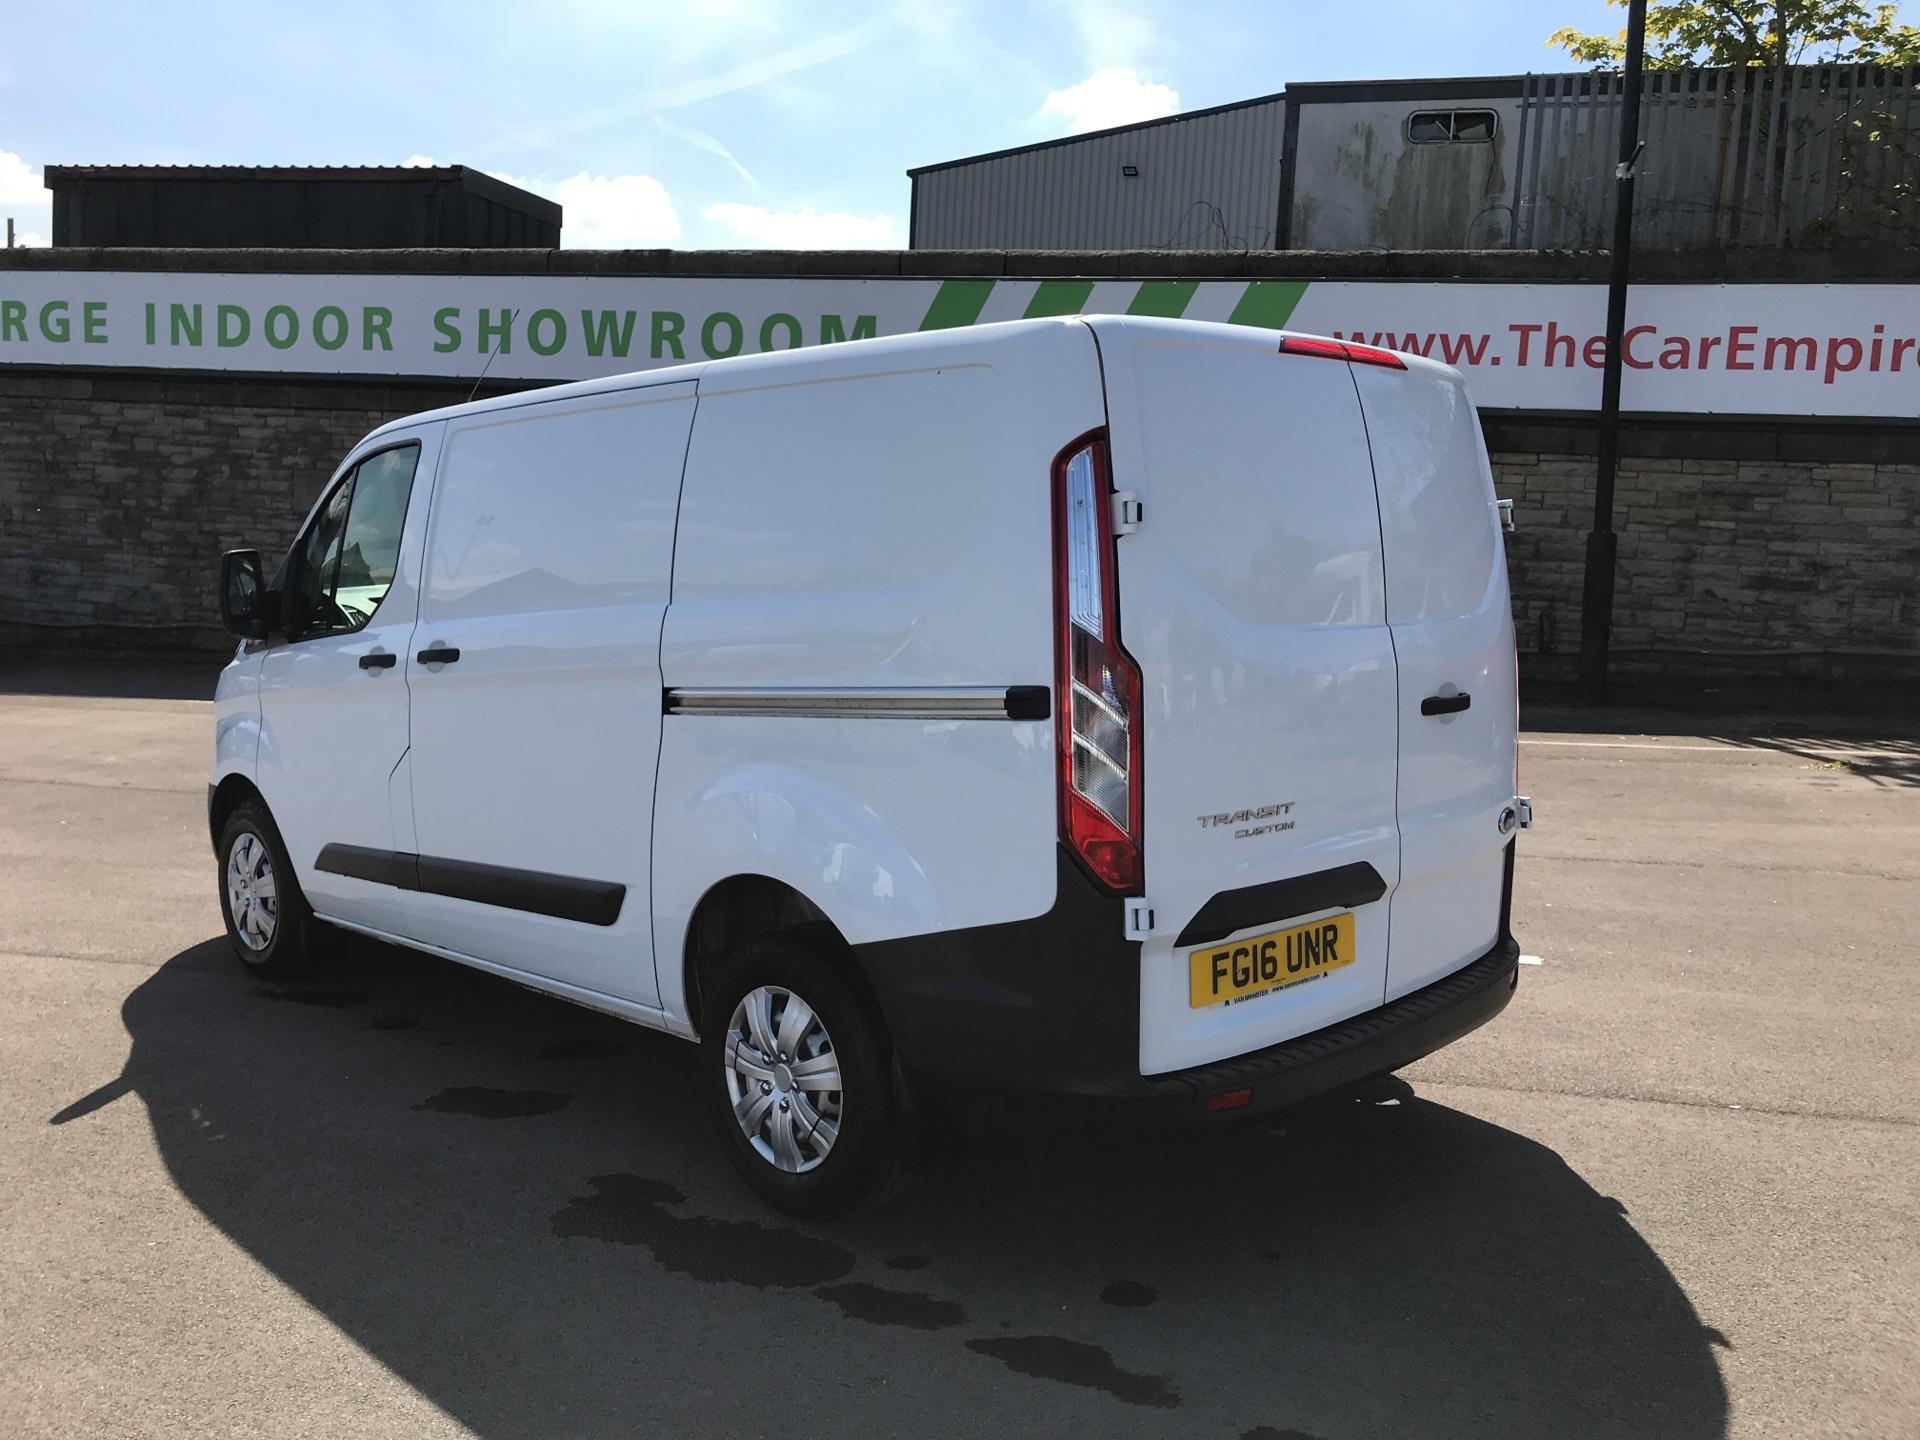 2016 Ford Transit Custom 2.2 Tdci 100Ps Low Roof Van (FG16UNR) Image 5